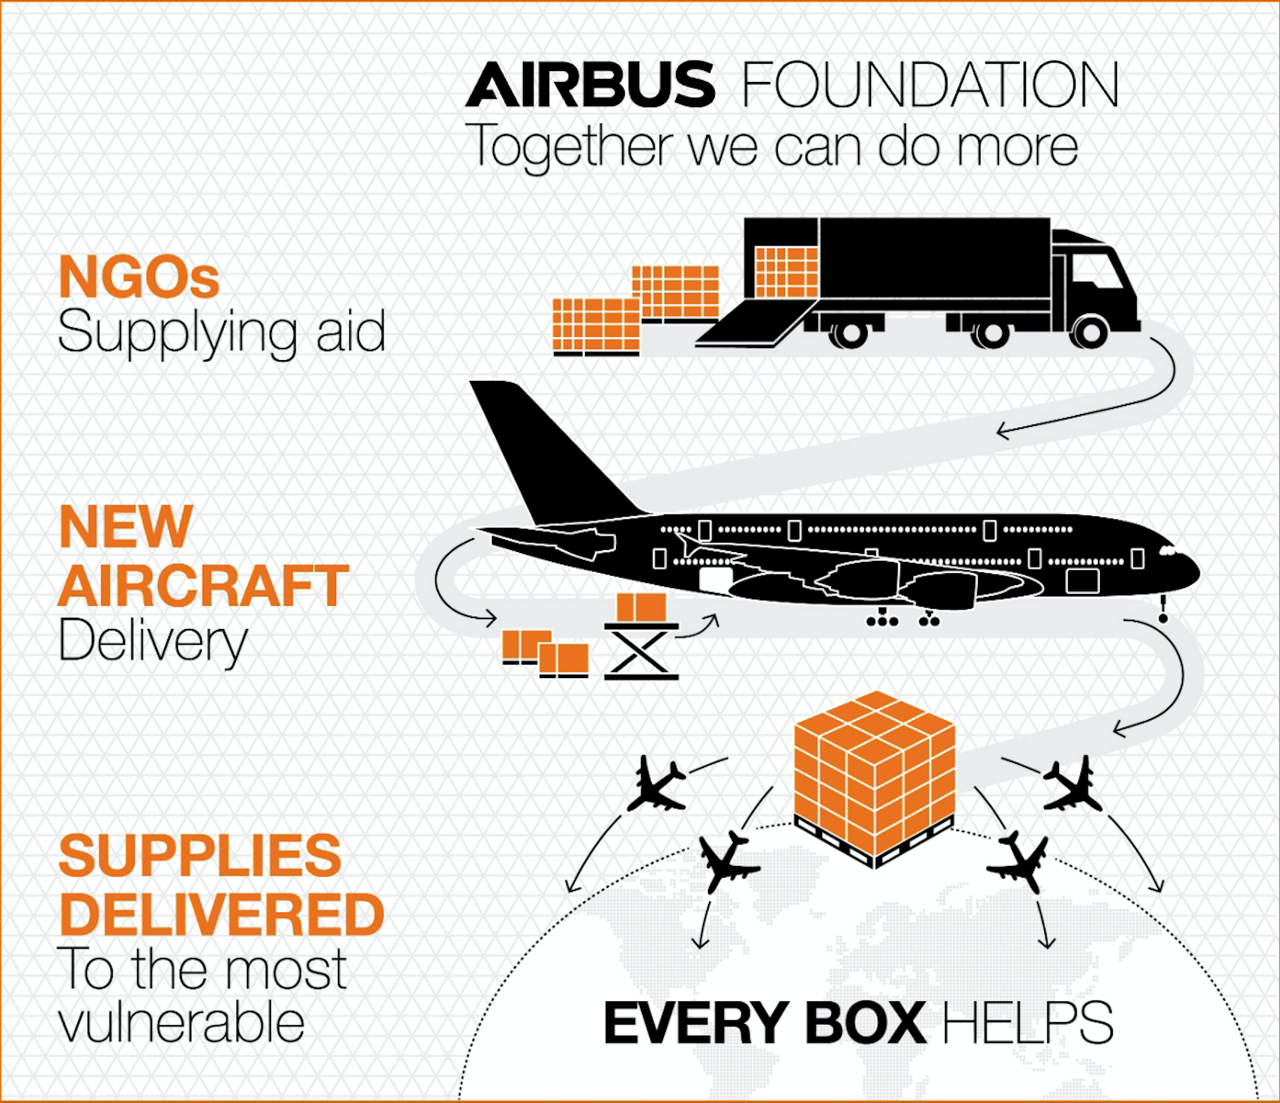 An infographic highlighting the Airbus Foundation's partnership with the humanitarian community.